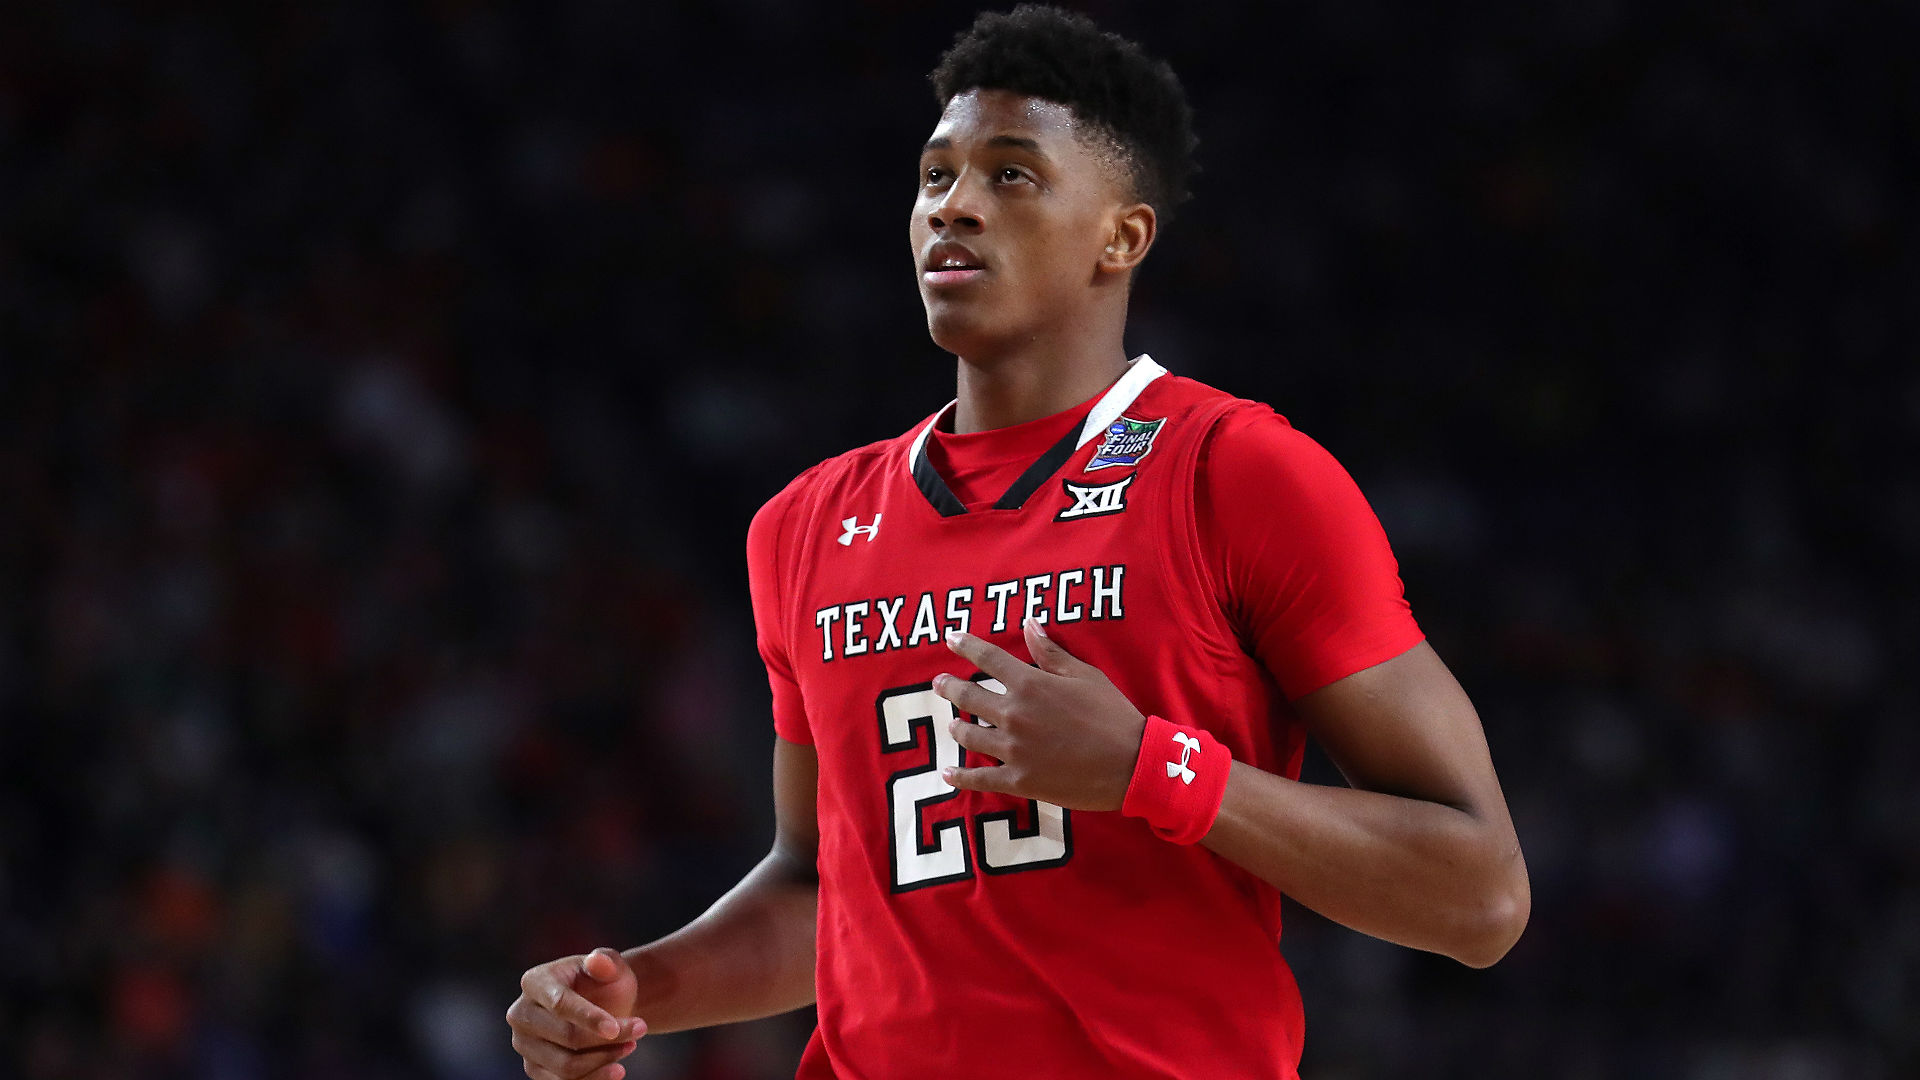 NBA Draft 2019 rumors: Hawks interested in trading up for Jarrett Culver